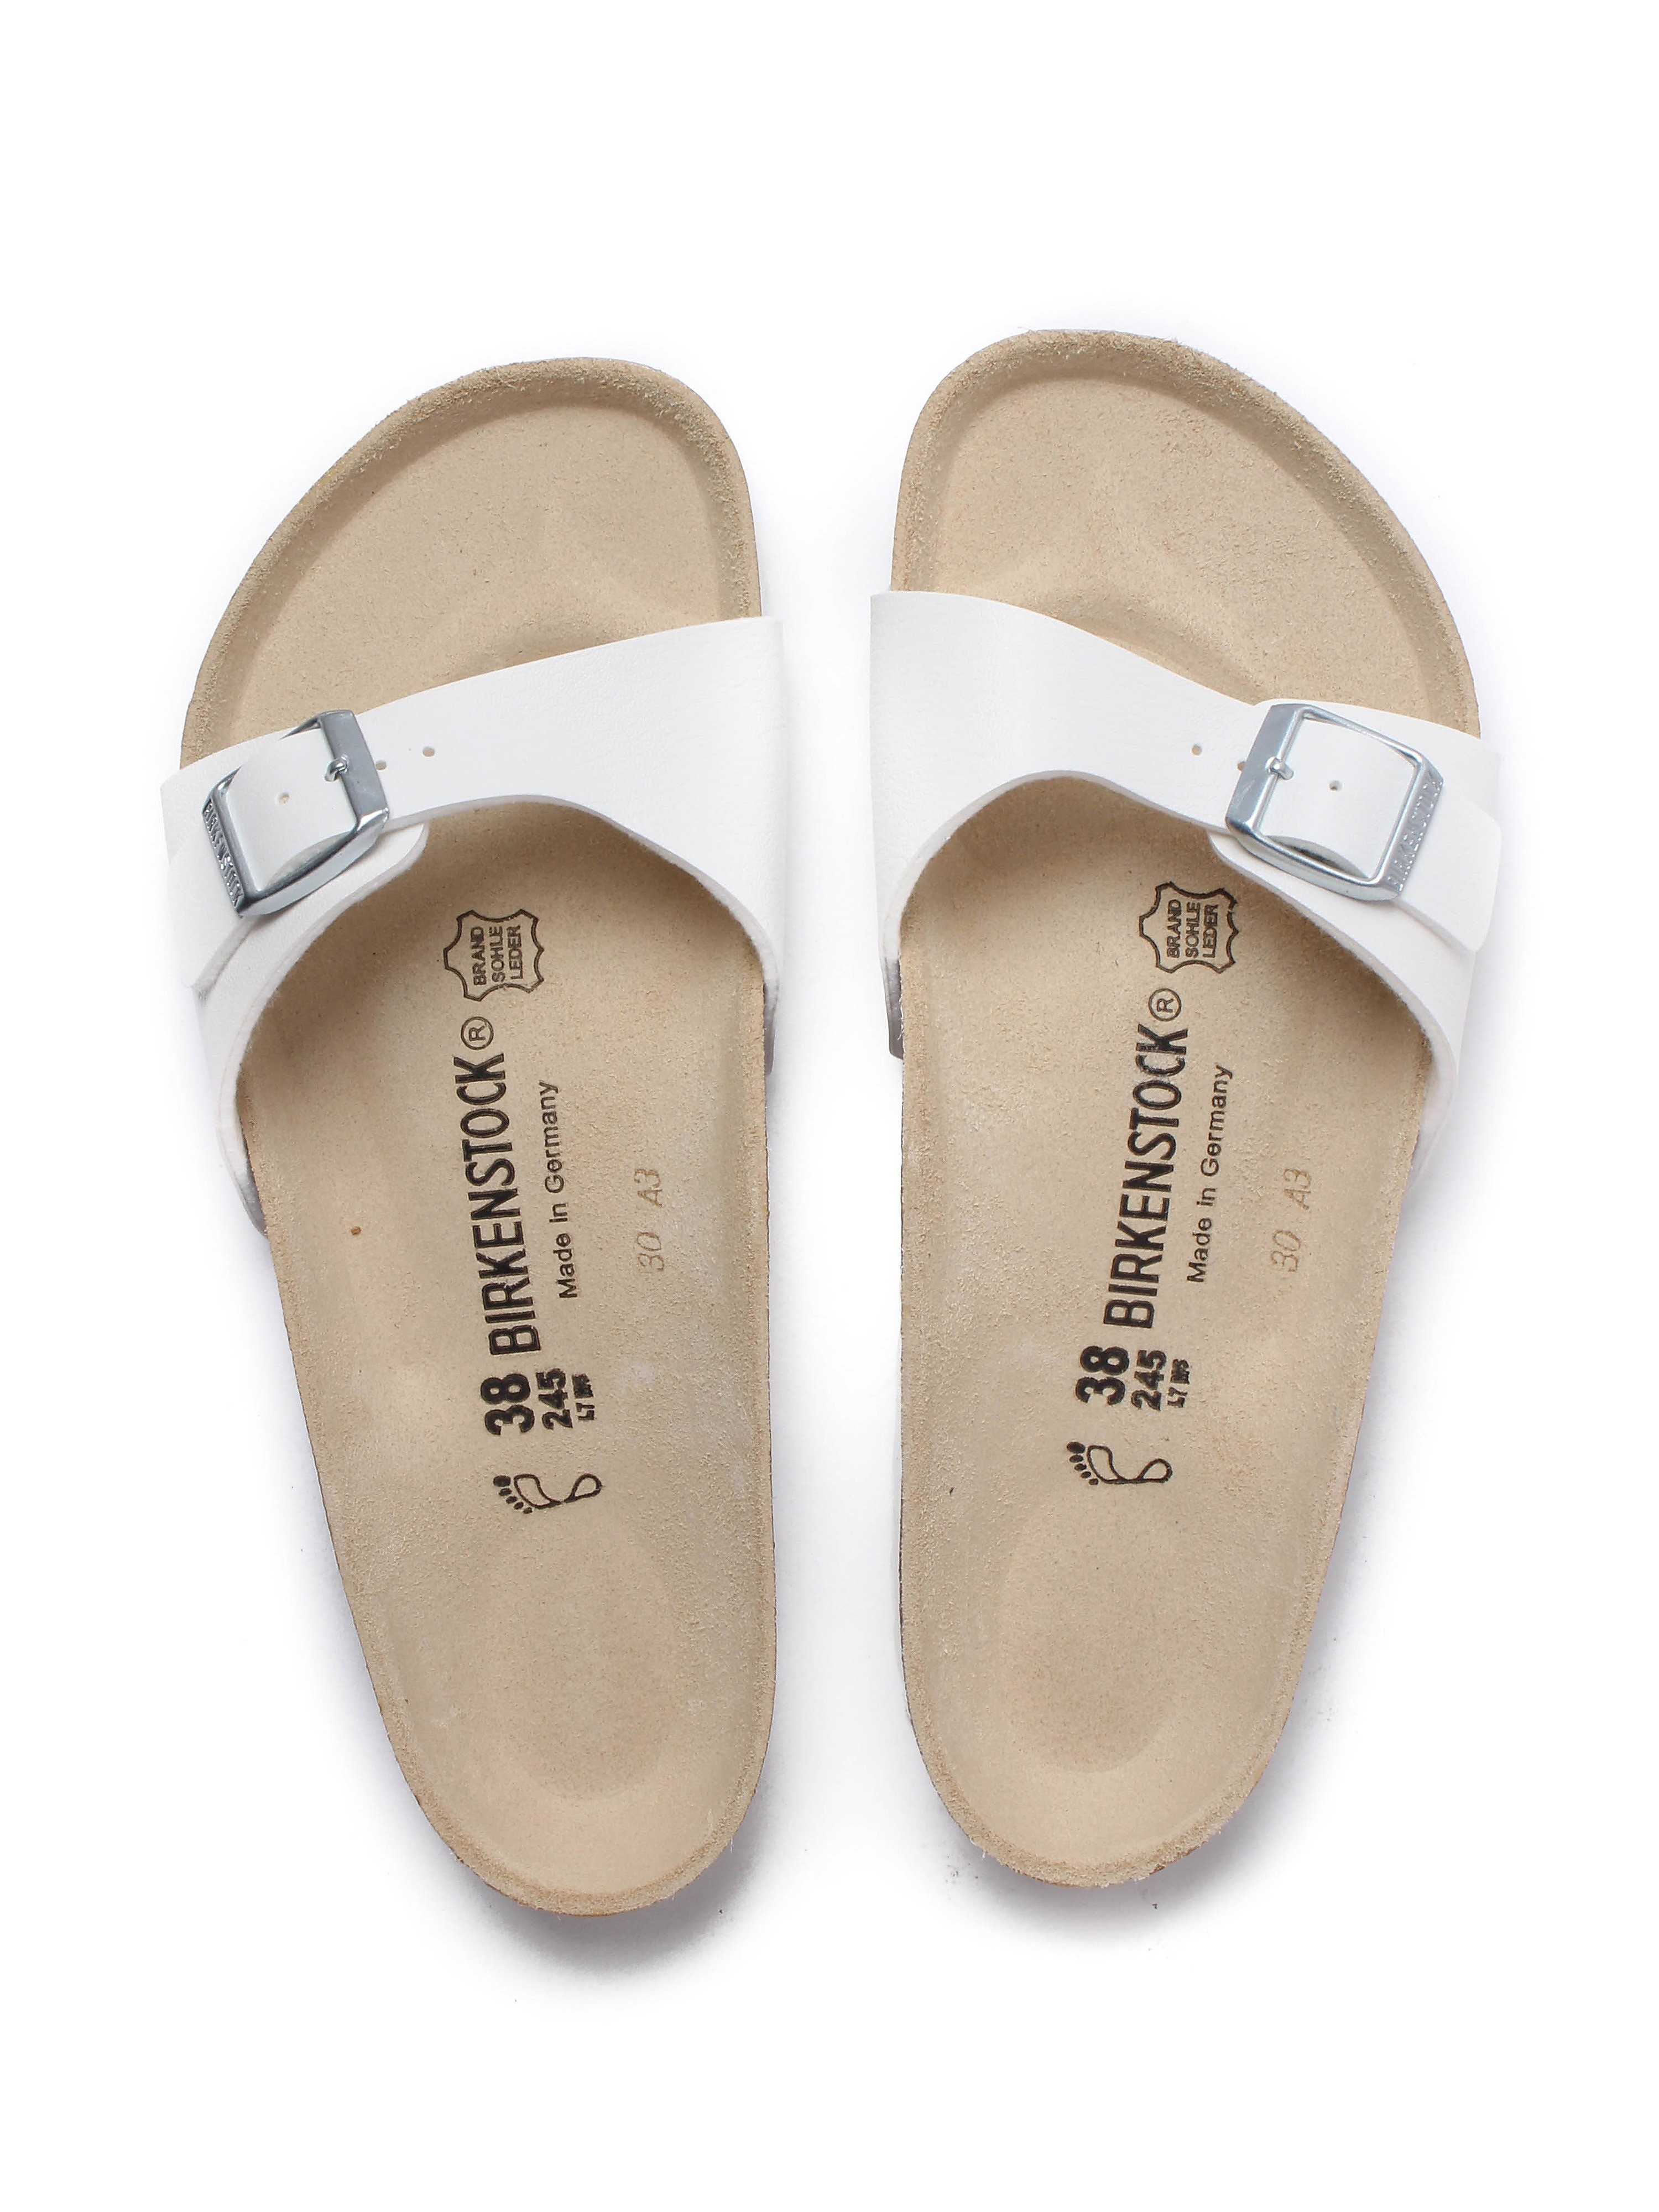 Birkenstock Women's Madrid Single Strap Sandals - White Leather